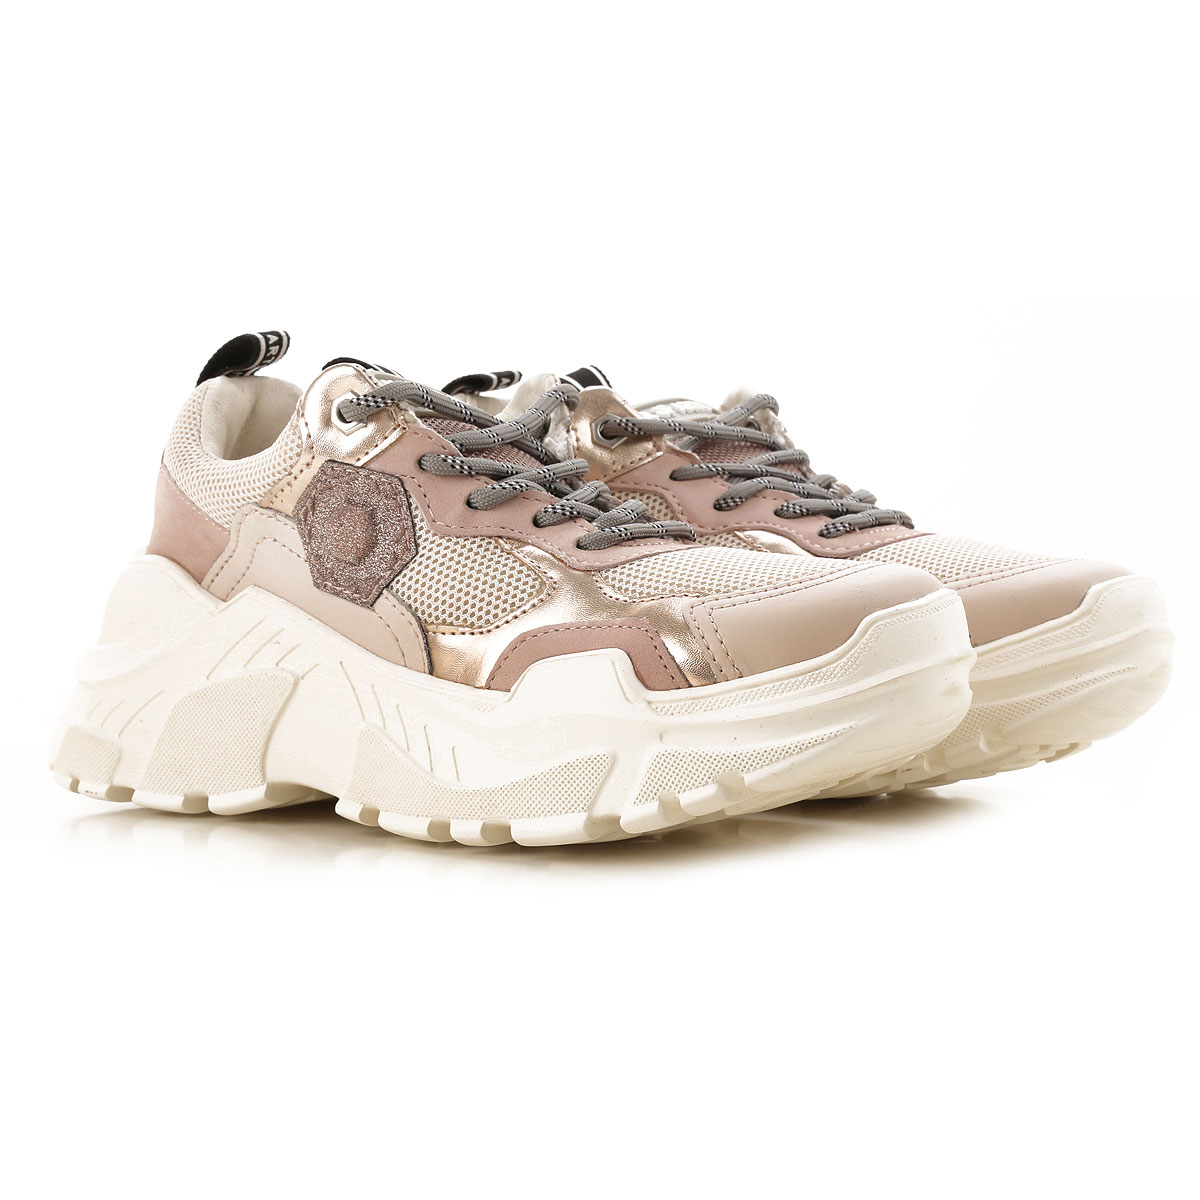 Moa Master of Arts Sneakers for Women On Sale in Outlet, Pale Antique Rose, Leather, 2019, 6 7